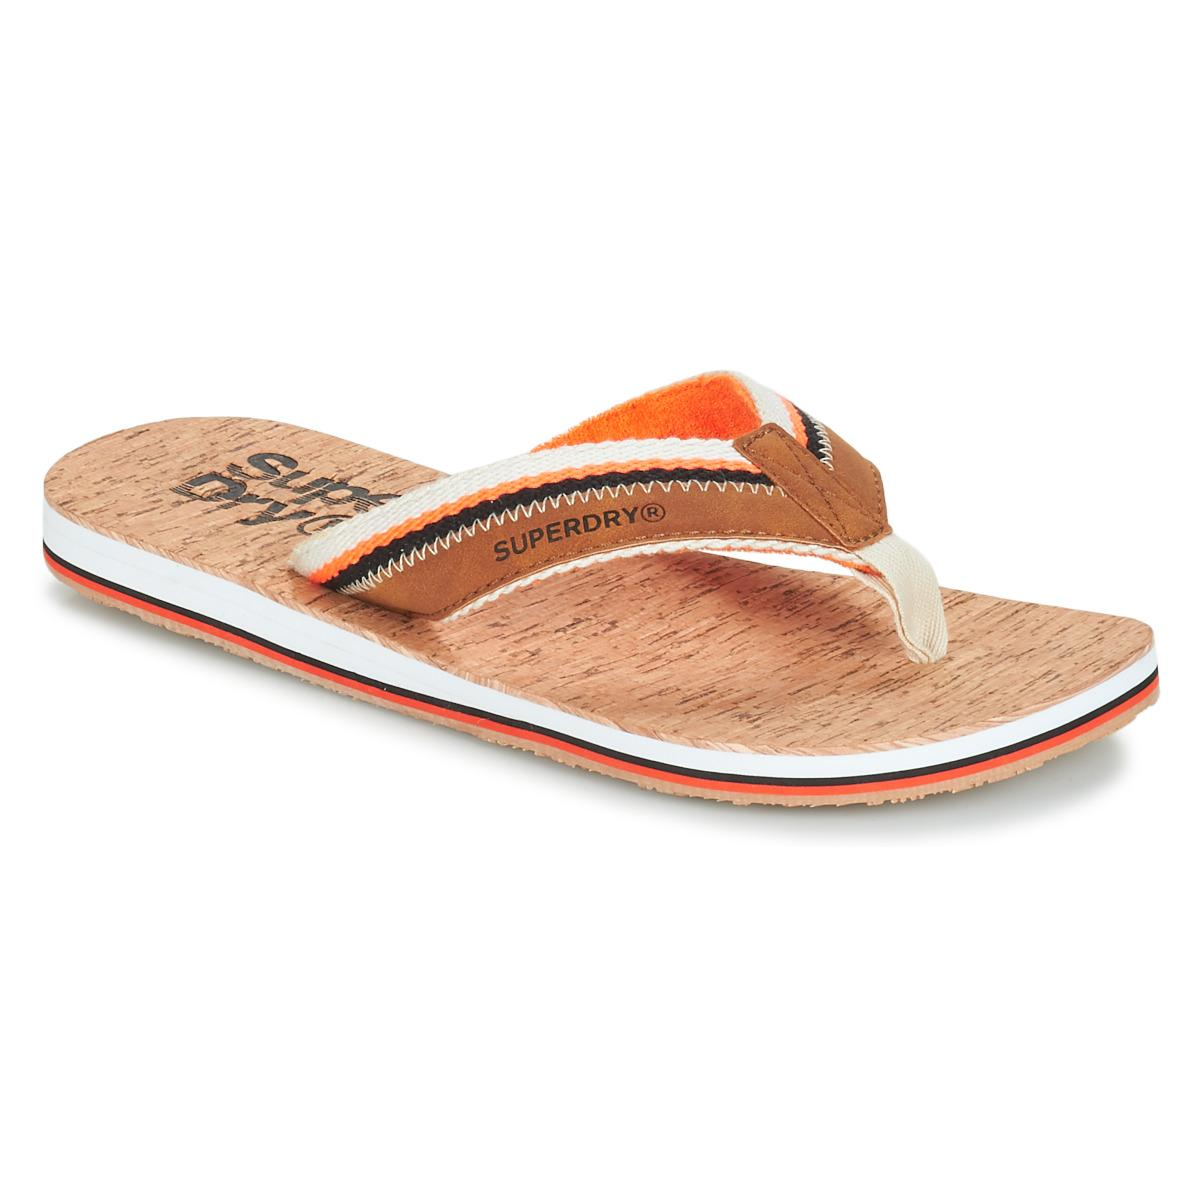 28e429fa5935 Superdry Roller Flip Flop Flip Flops   Sandals (shoes) in Brown for ...